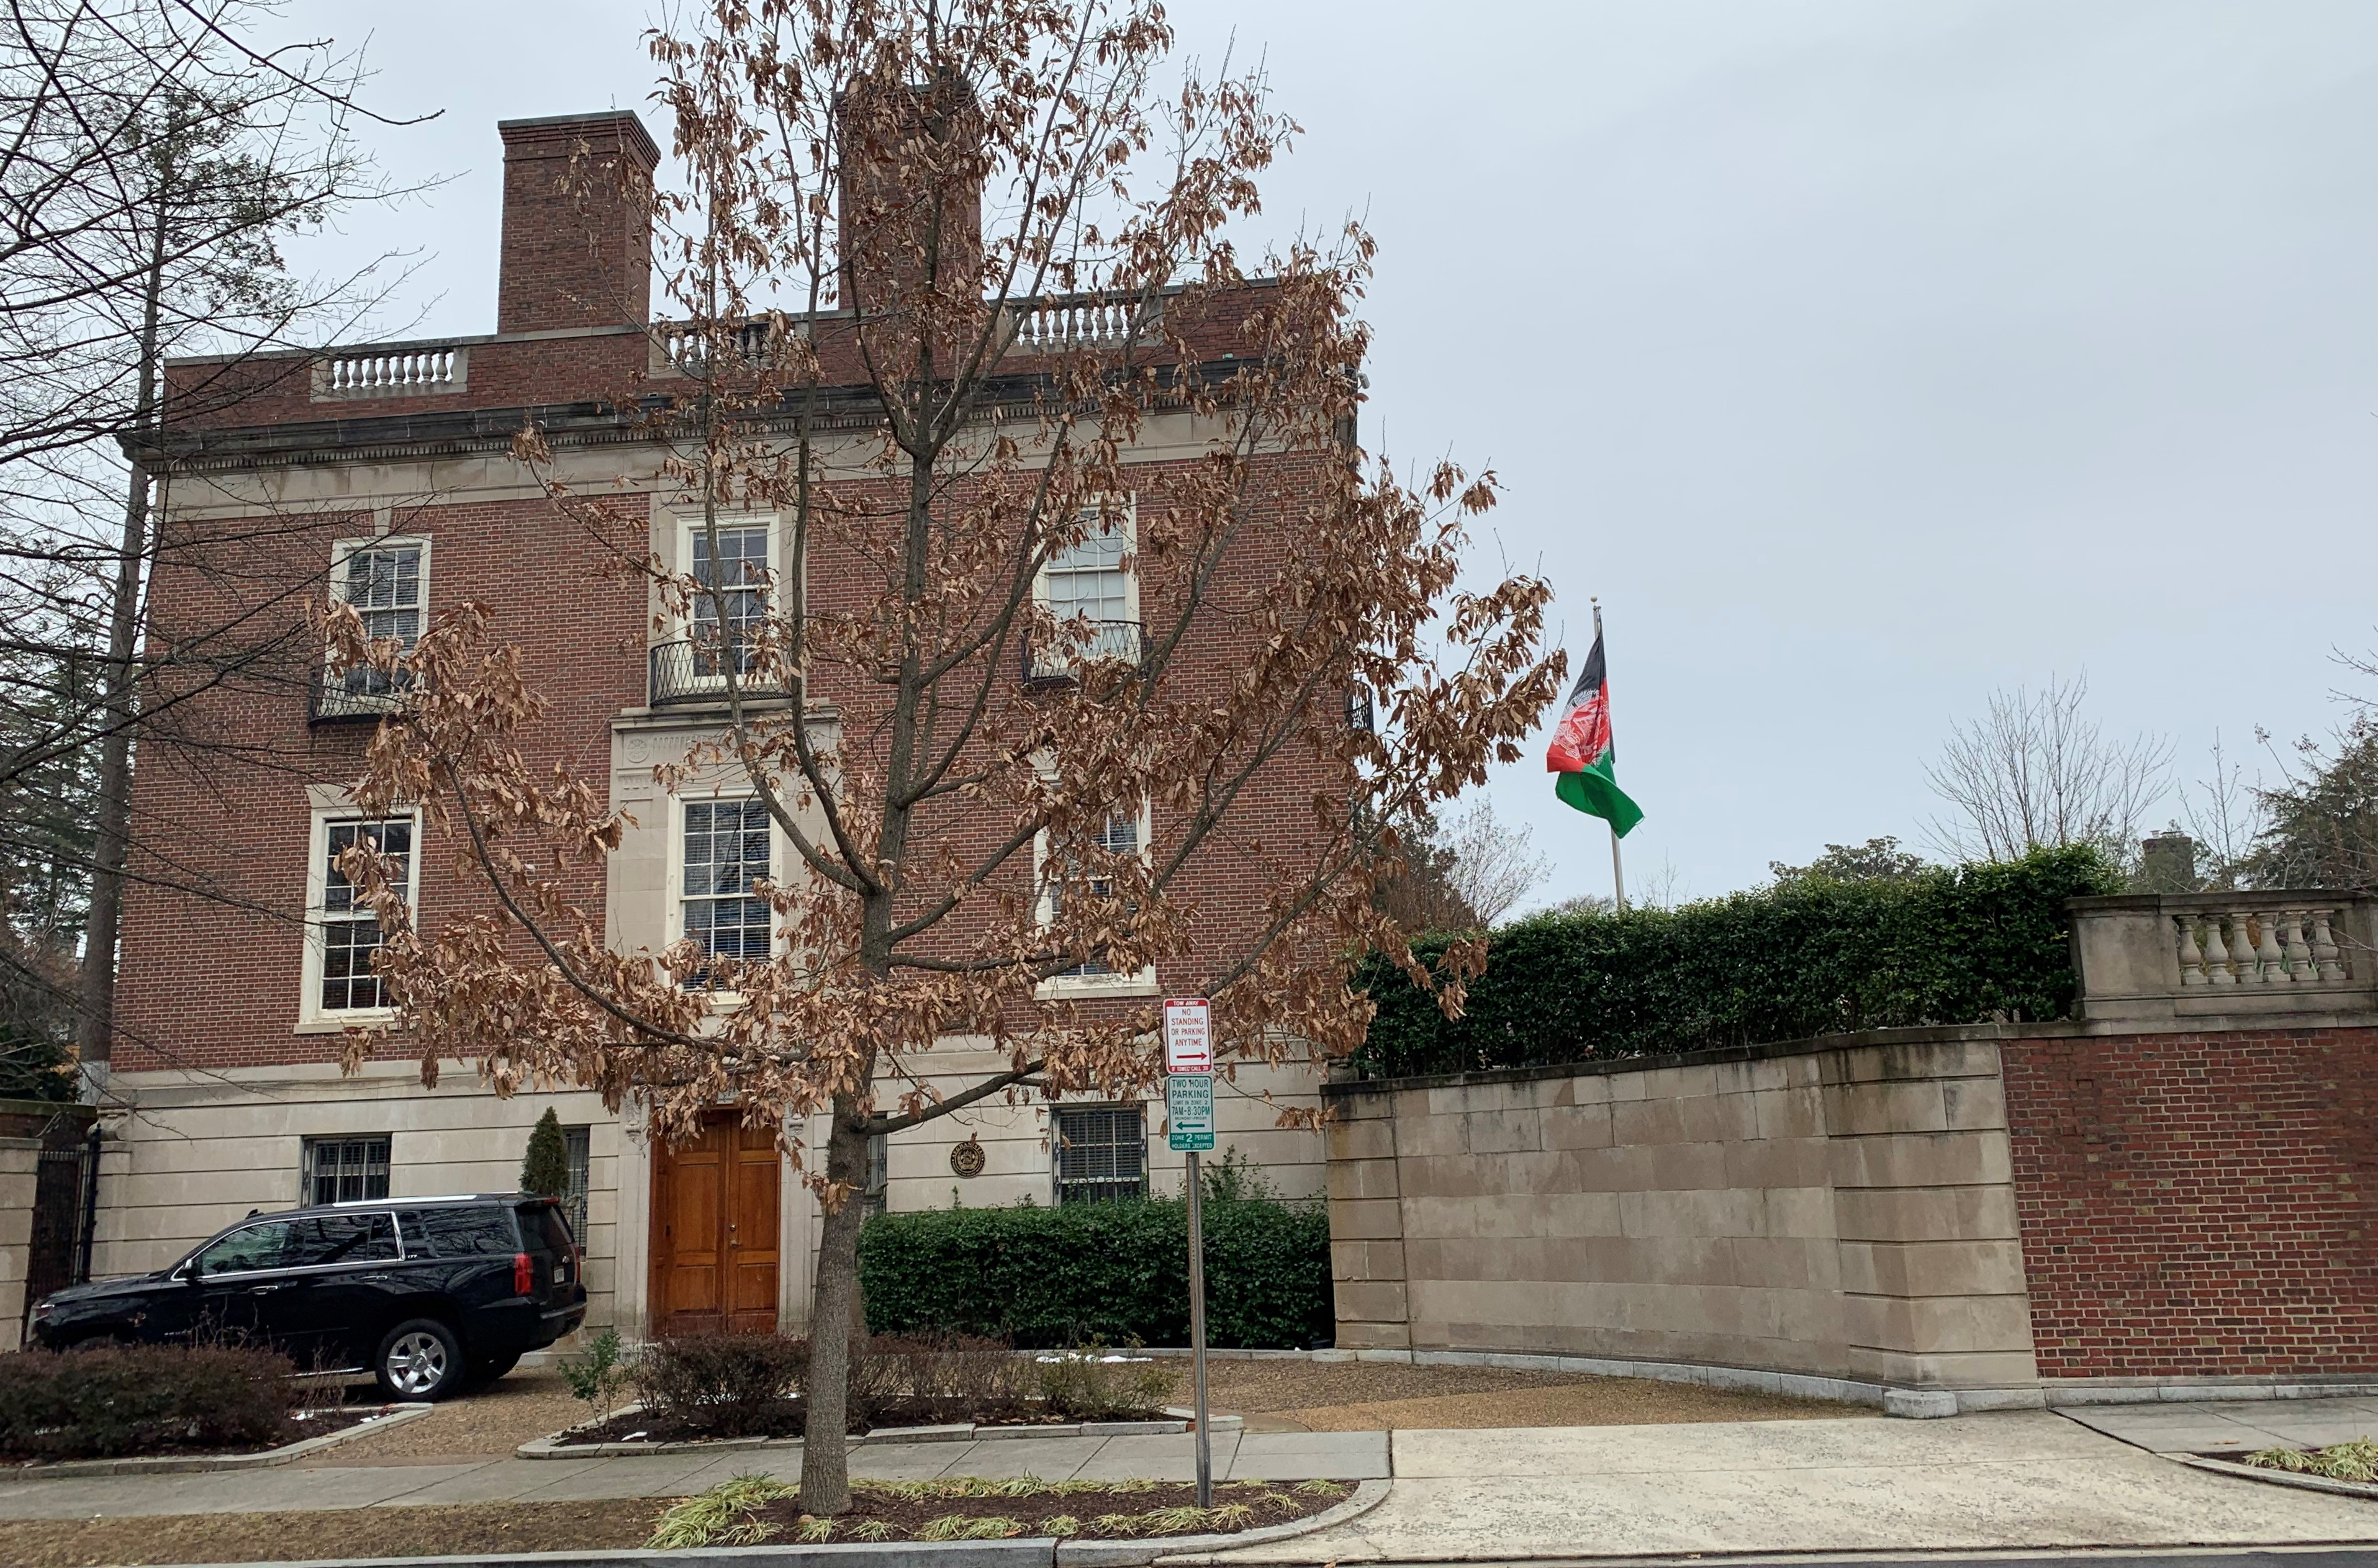 Real Estate and Homes For Sale Near the Embassy of Afghanistan in Washington, DC. Artyom Shmatko Realtor